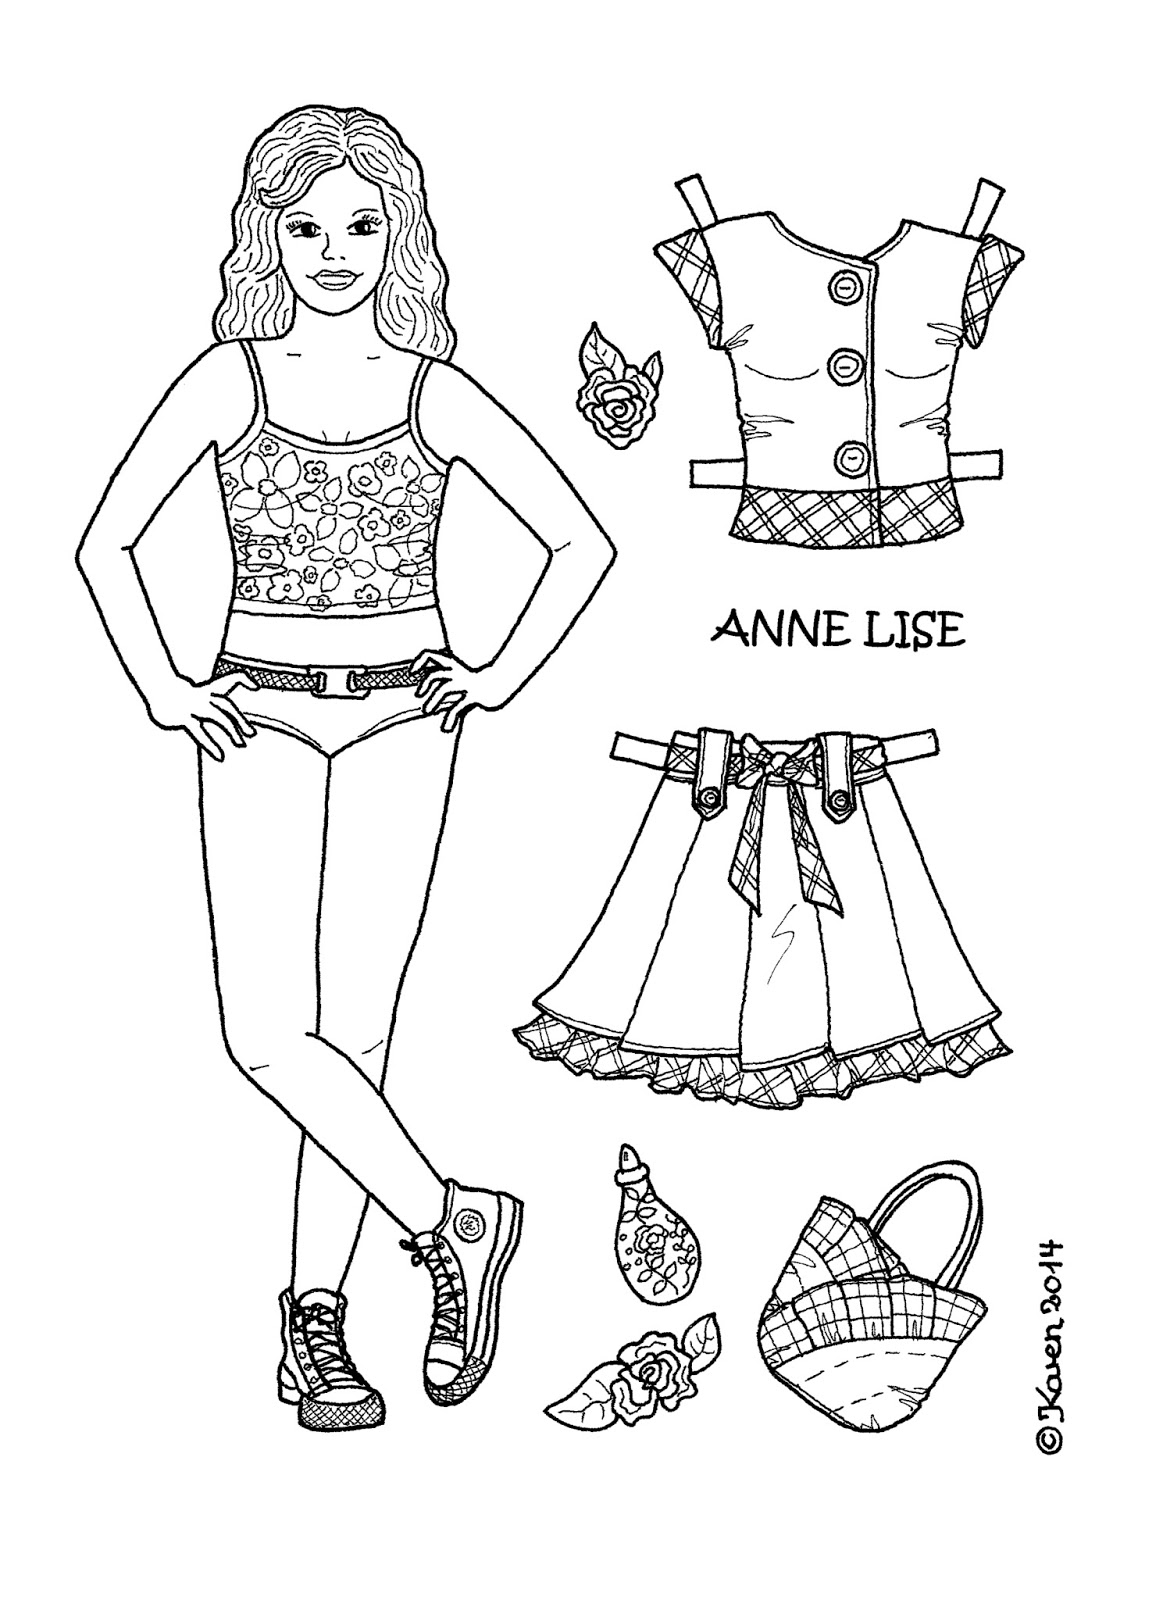 Anne Lise 1 Paper Doll to Print and Colour. Anne Lise 1